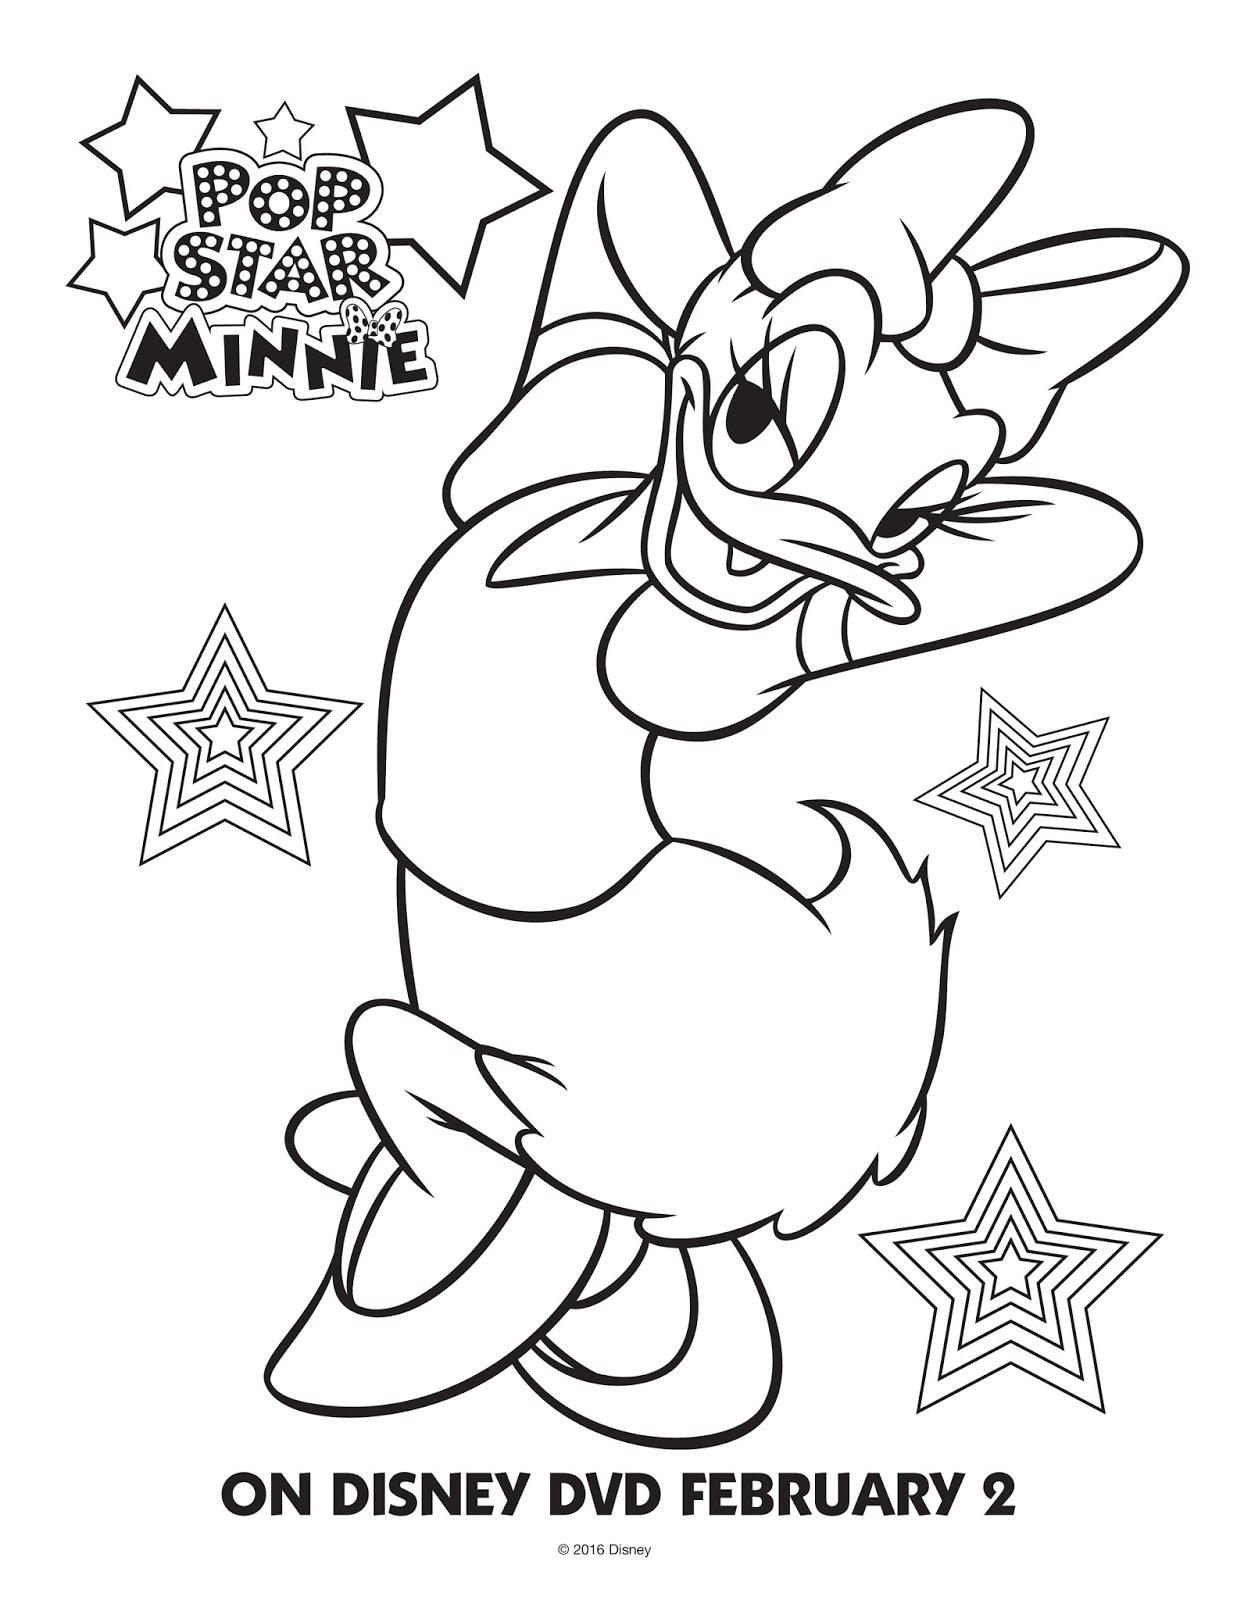 Disney Minnie Mouse ColoringActivity